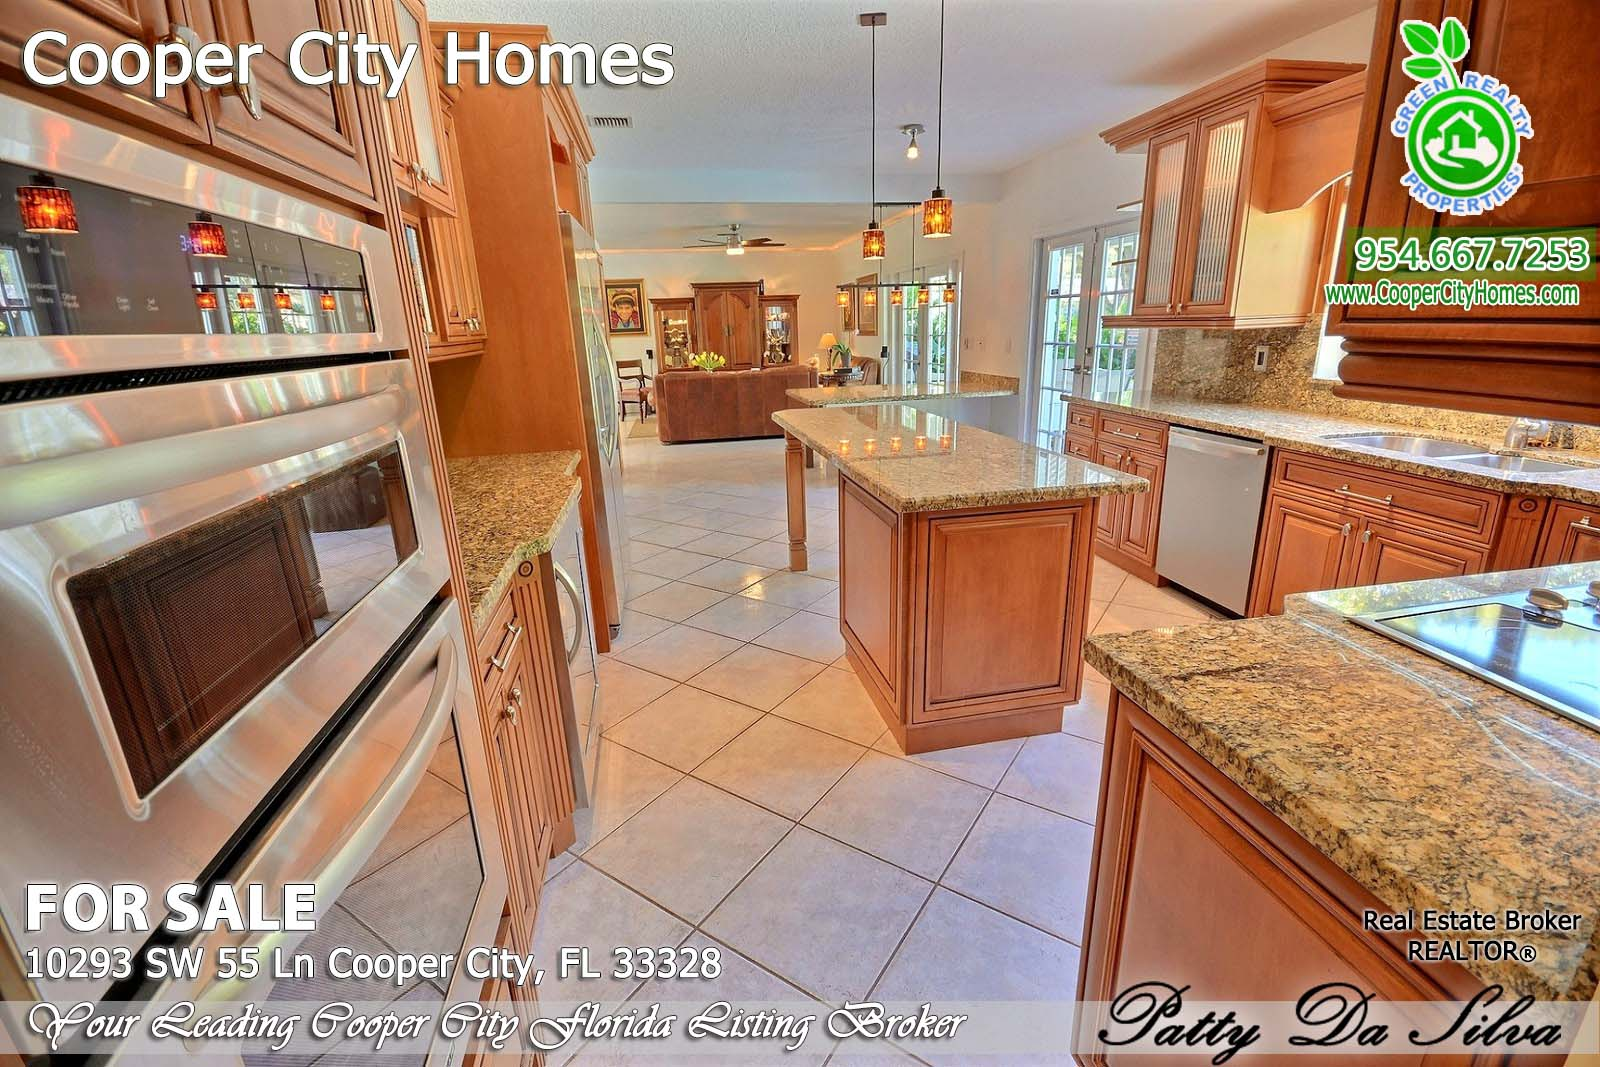 10293 - Cooper City Homes For Sale (15)